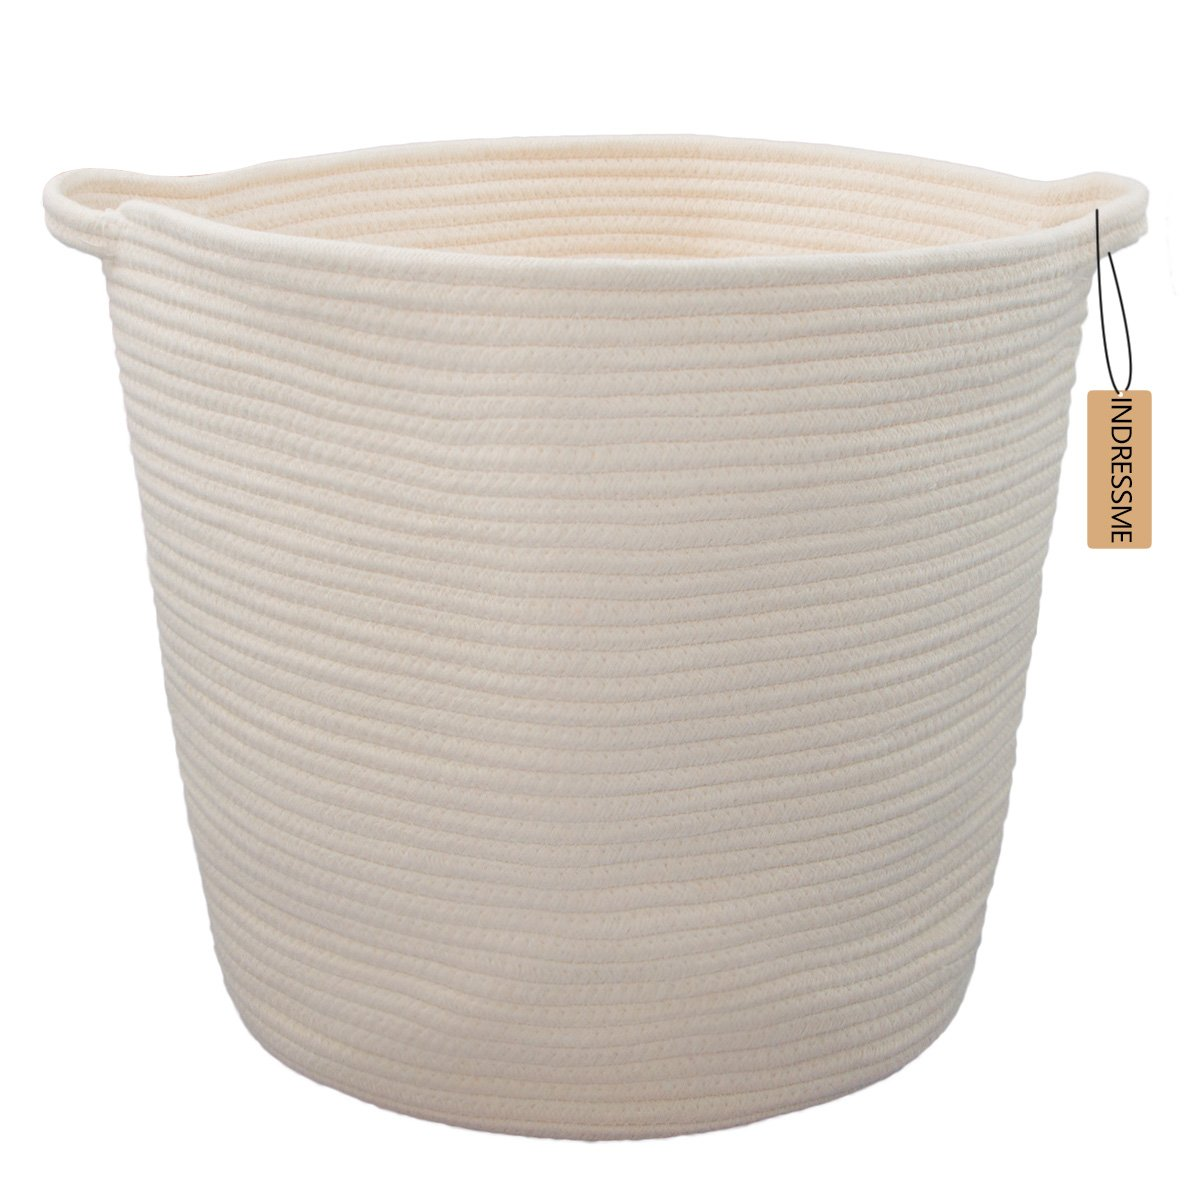 Amazon.com : Orino Cotton Rope Storage Baskets With